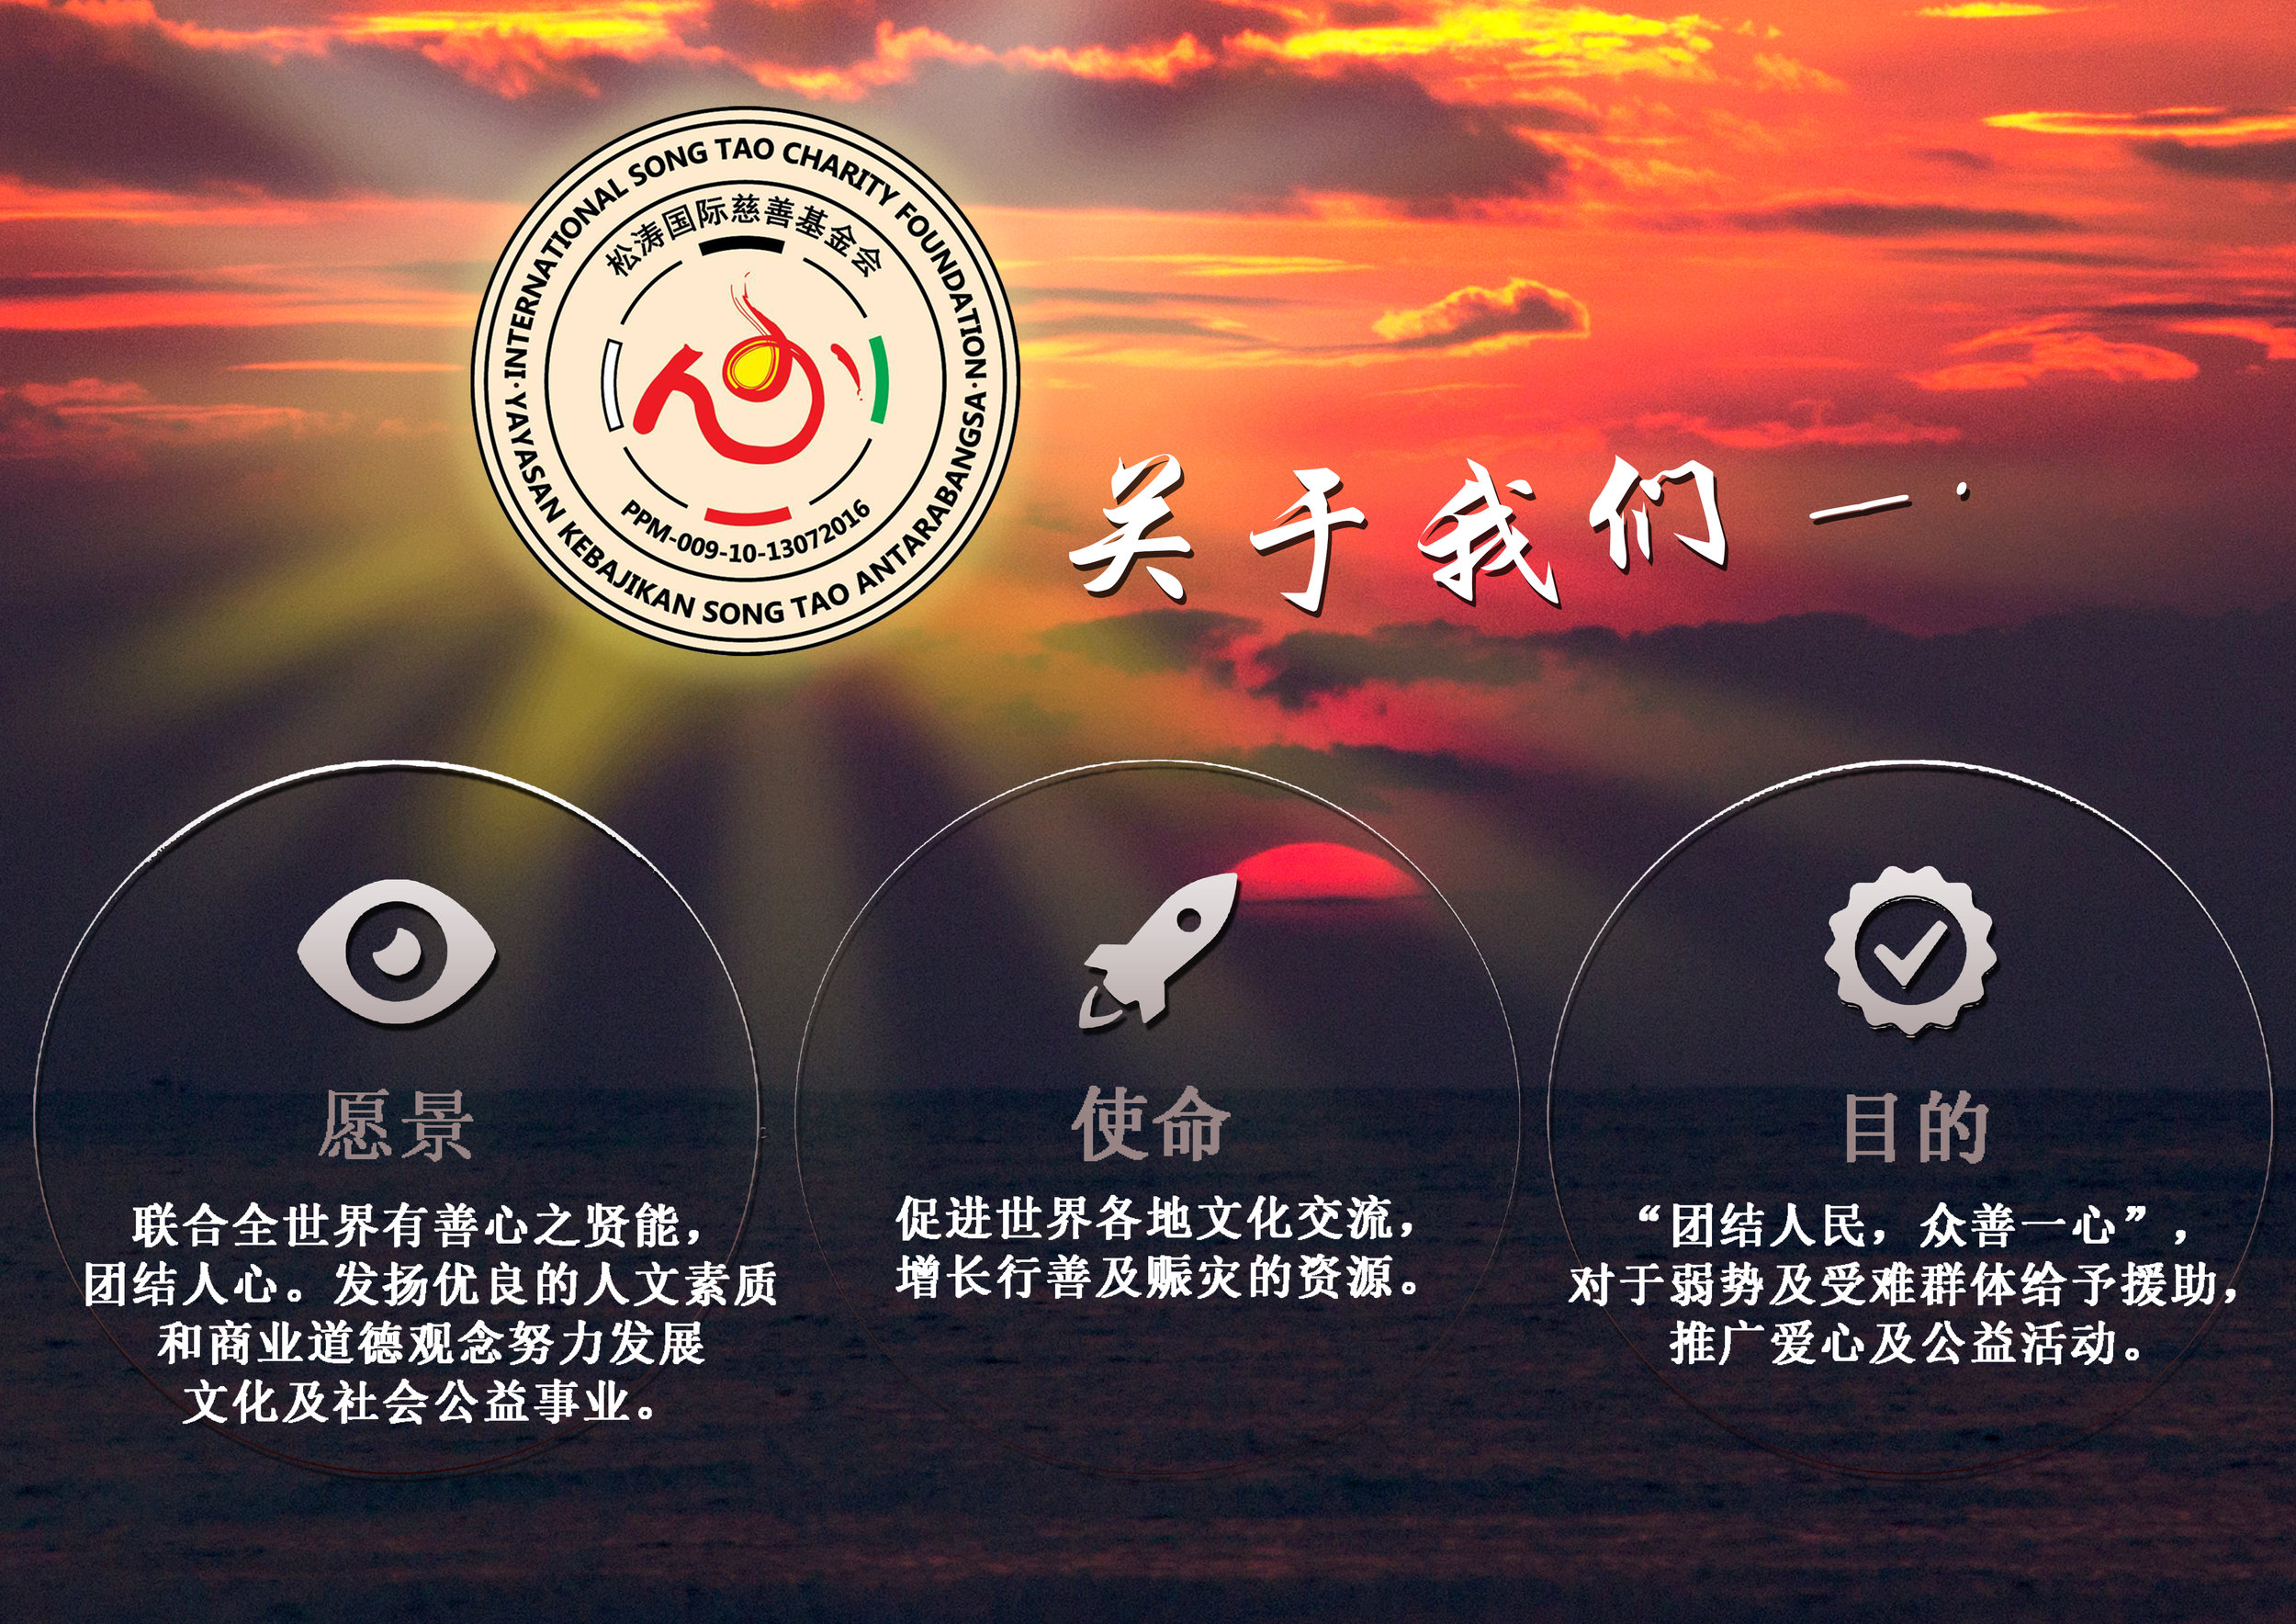 Vision Mission Objectives chinese.jpg